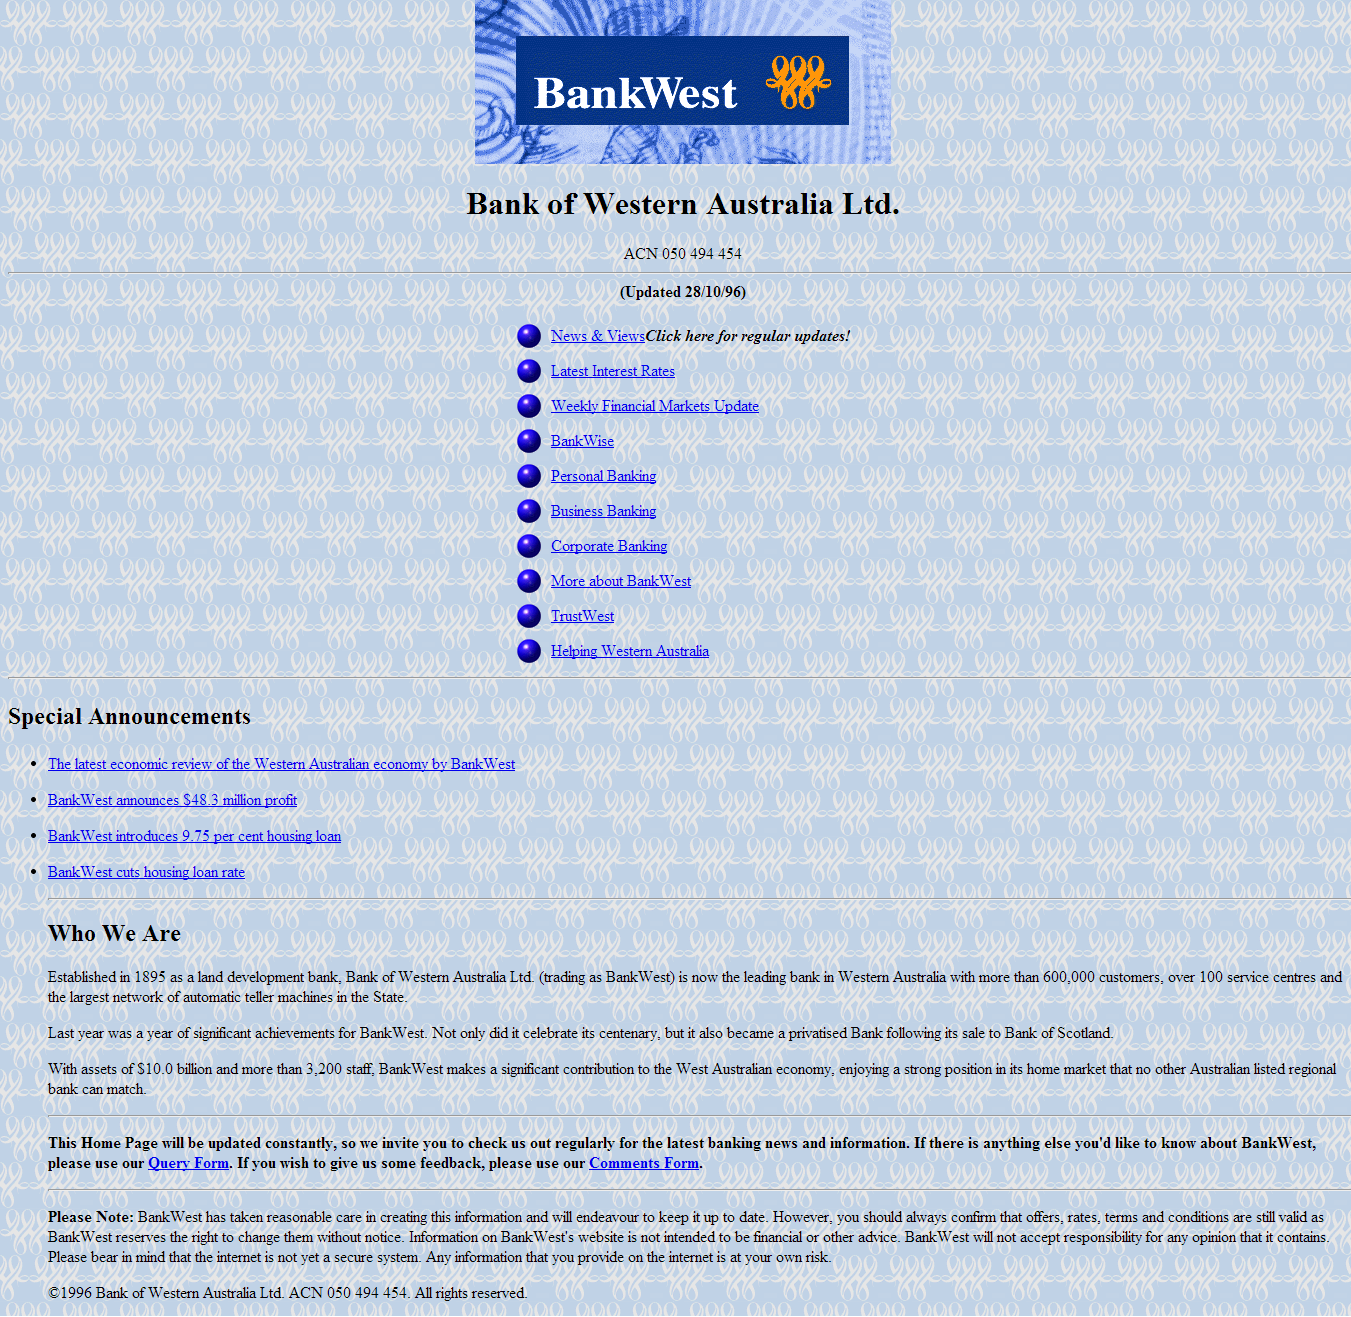 Bankwest's First Website